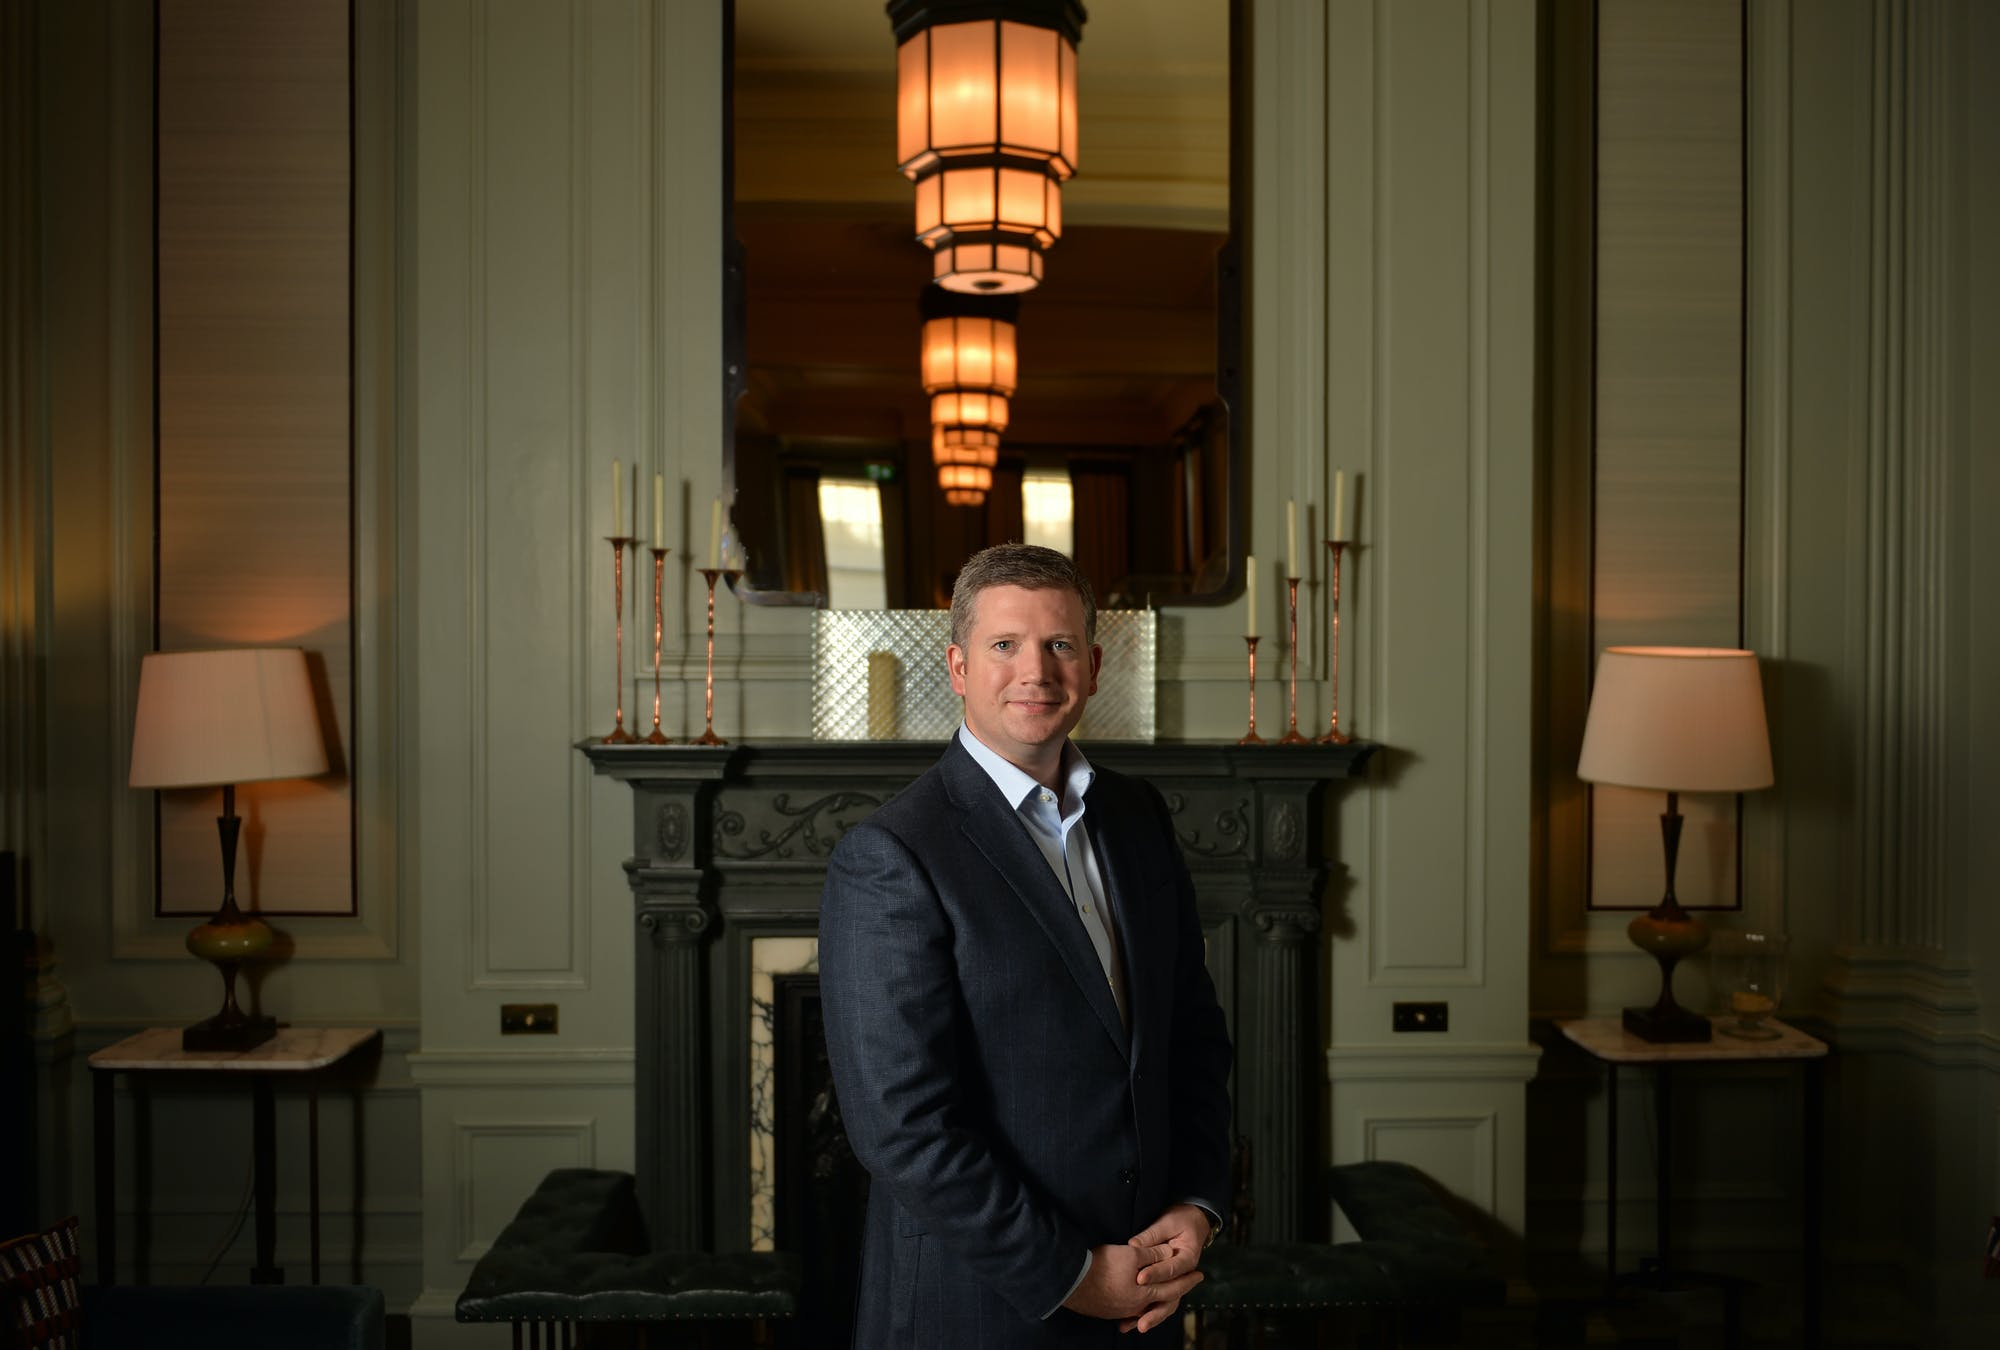 vigating the Crisis| Conor O'Leary onreopening Gleneagles today